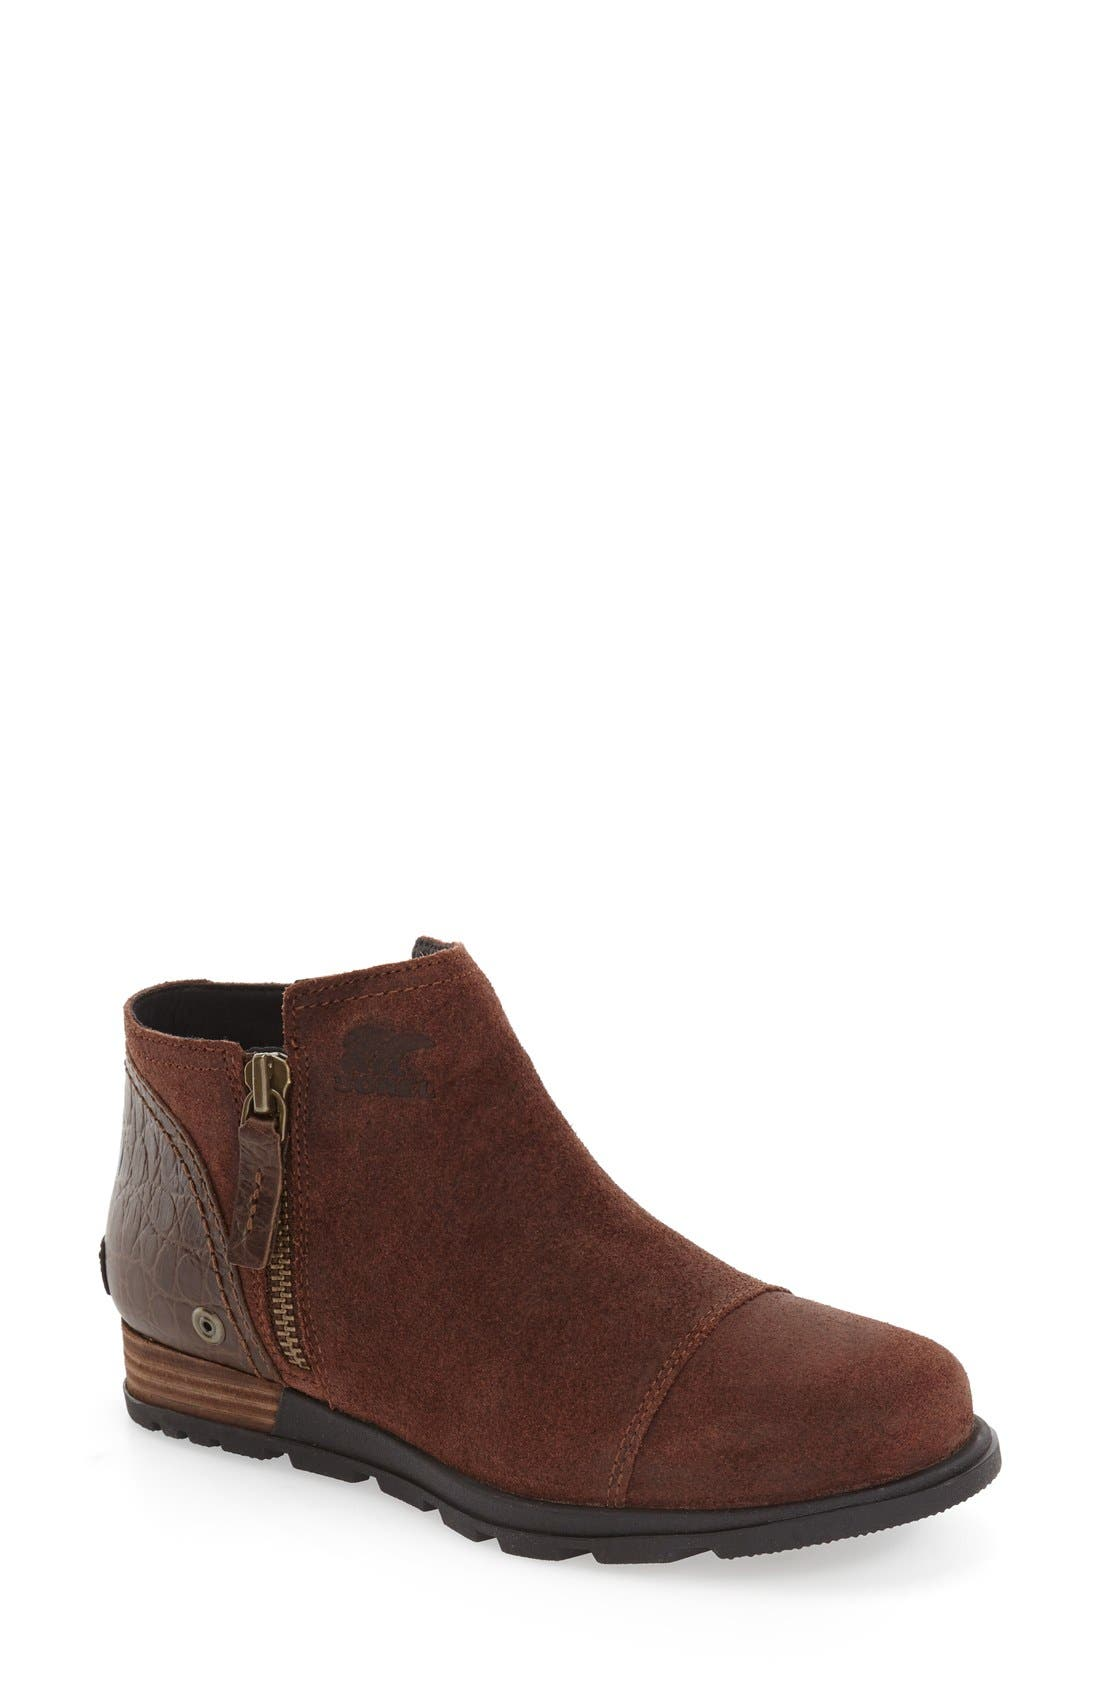 Main Image - SOREL 'Major Low' Bootie (Women)